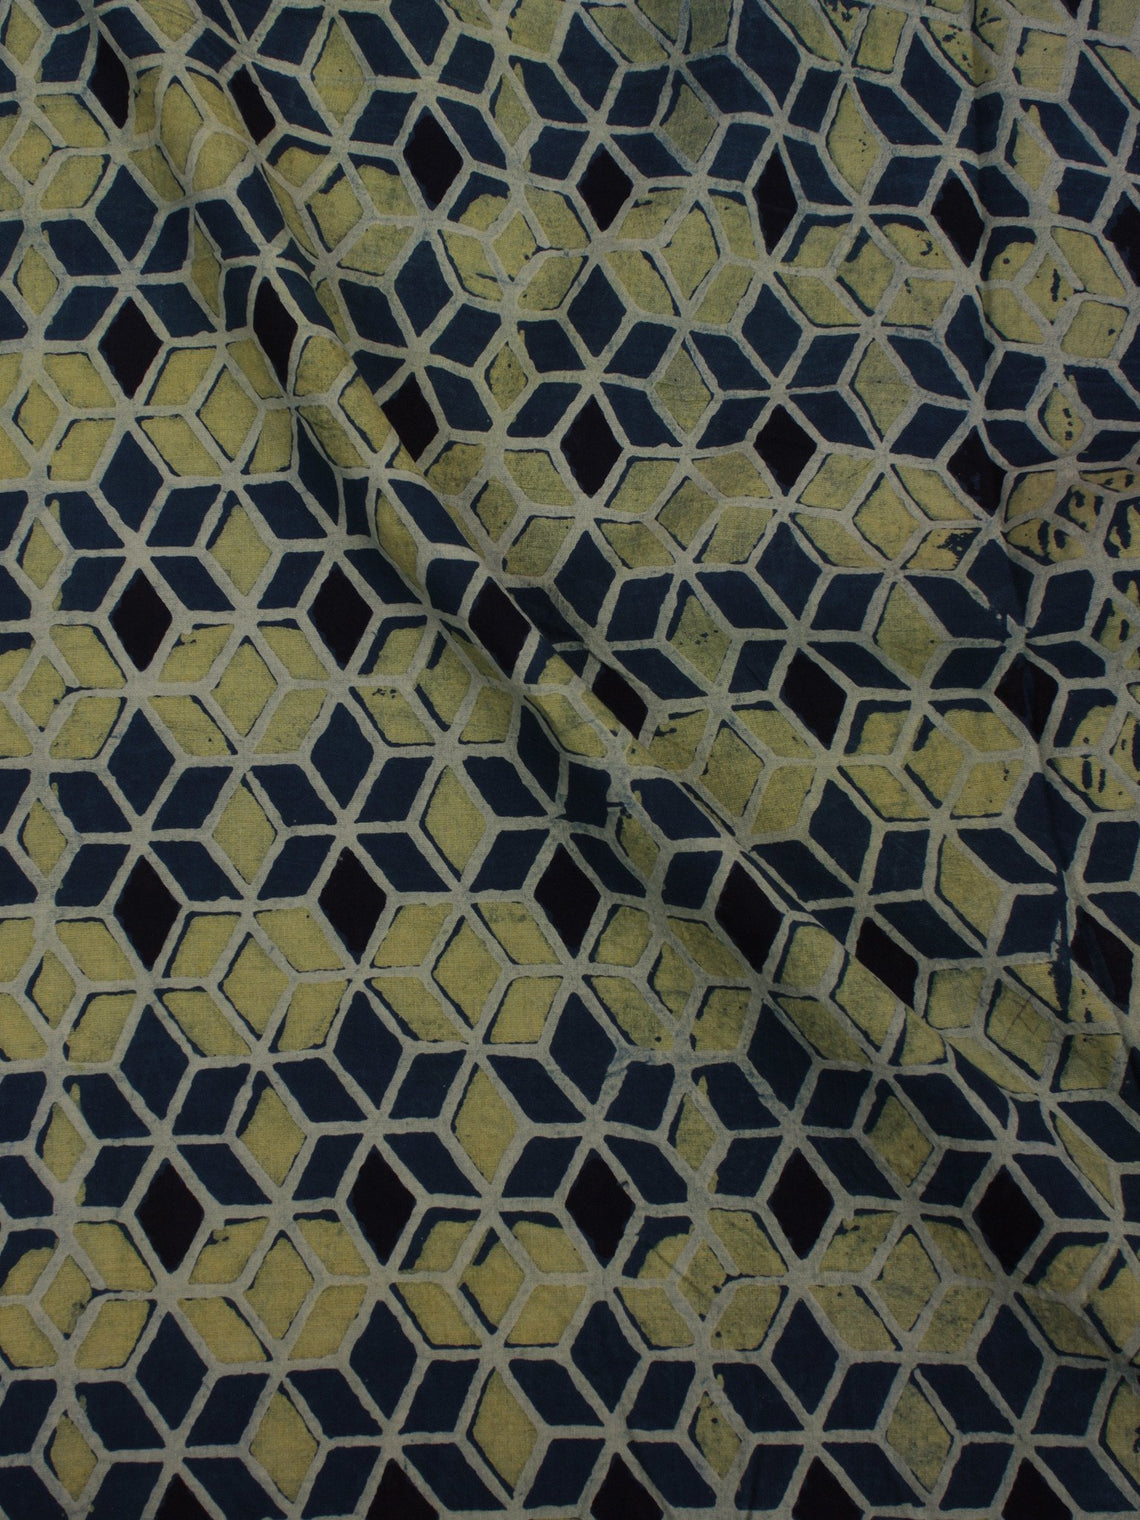 Green Blue Black Ivory Ajrakh Block Printed Cotton Fabric Per Meter - F0916683